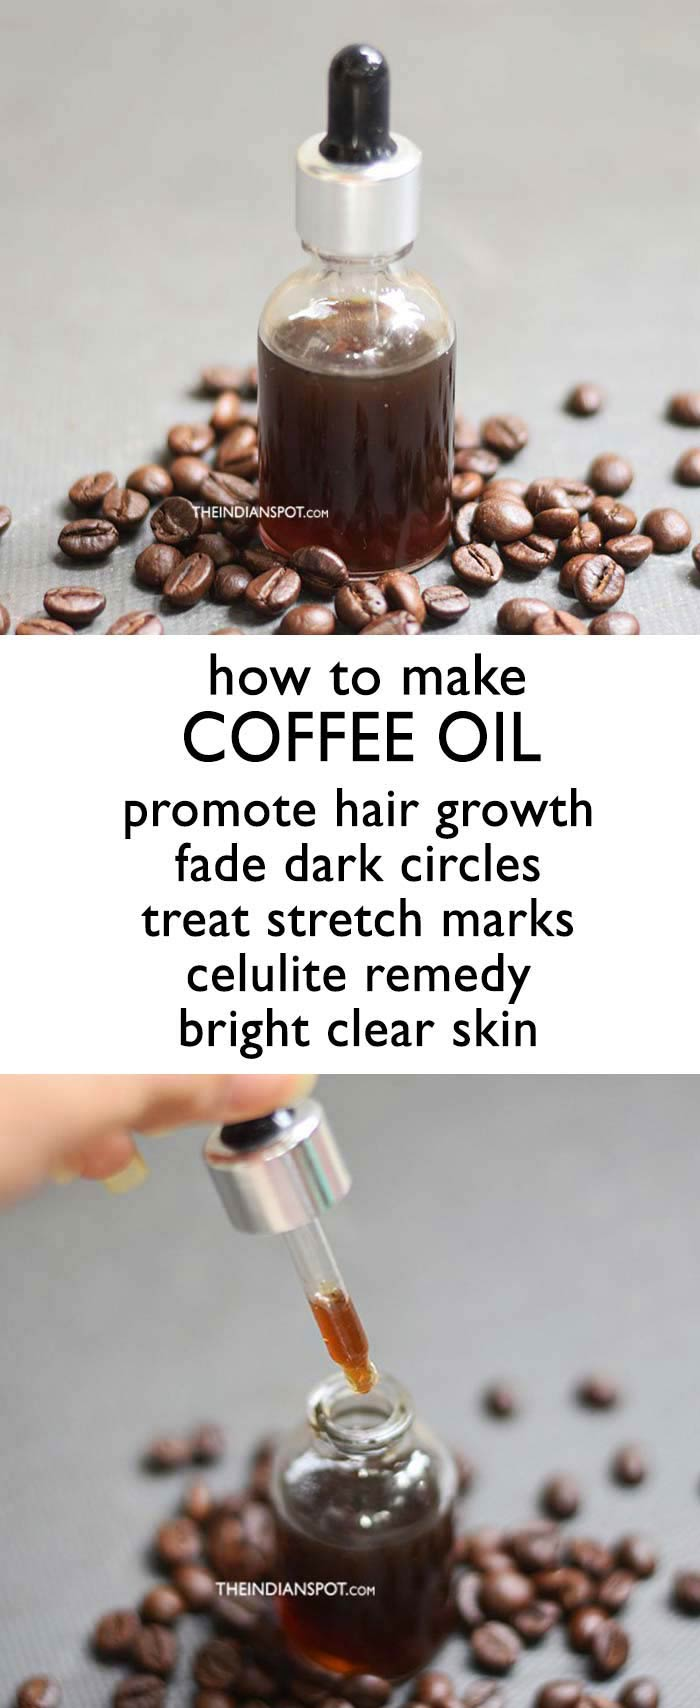 HOMEMADE COFFEE OIL RECIPE AND BENEFITS